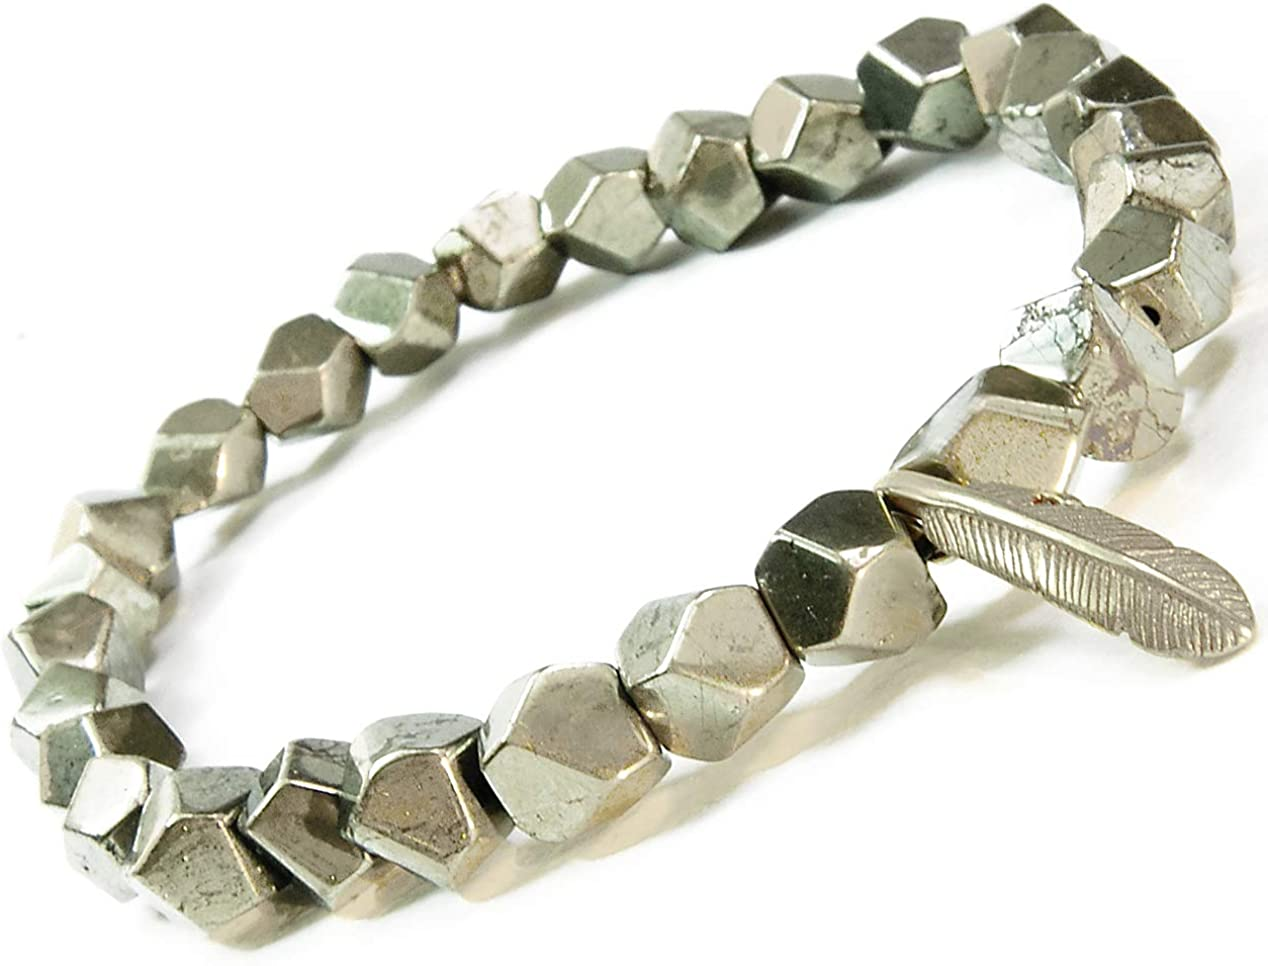 ONE ION Freedom's Pyrite Bracelet - 6mm Premium Pyrite and Brass Feather Pendant